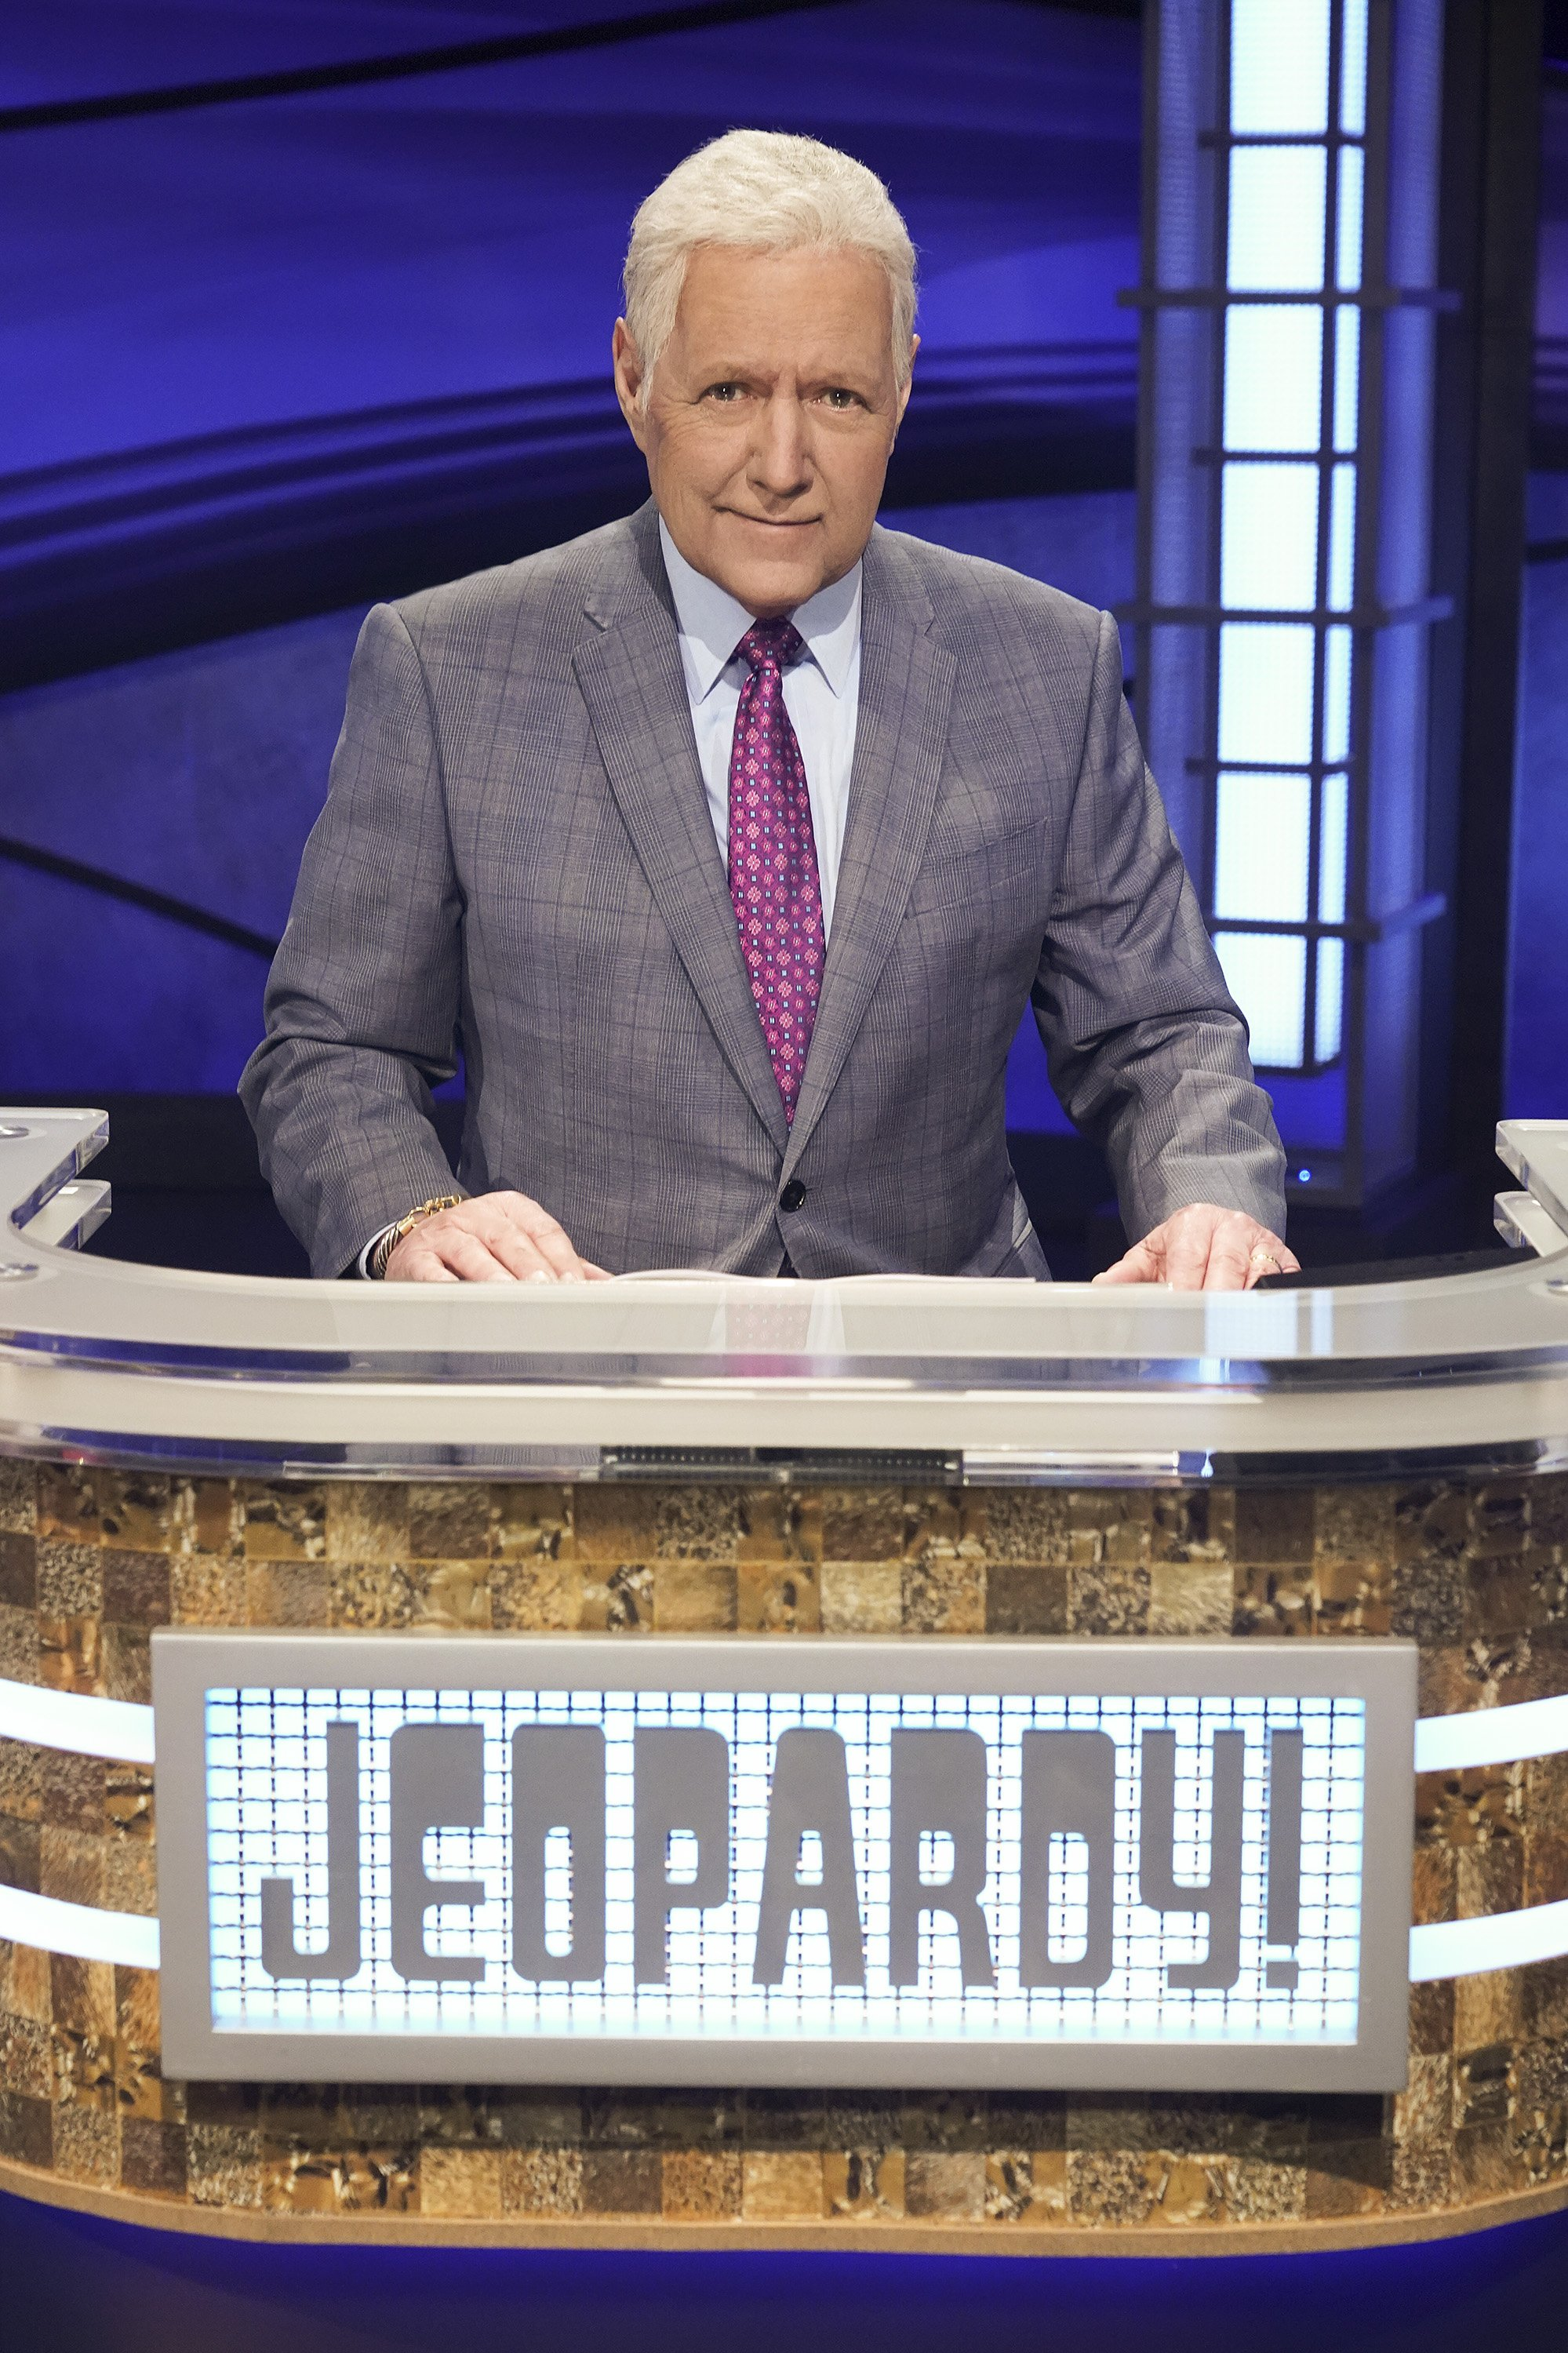 """Alex Trebek onstage during the """"Jeopardy!"""" game show 